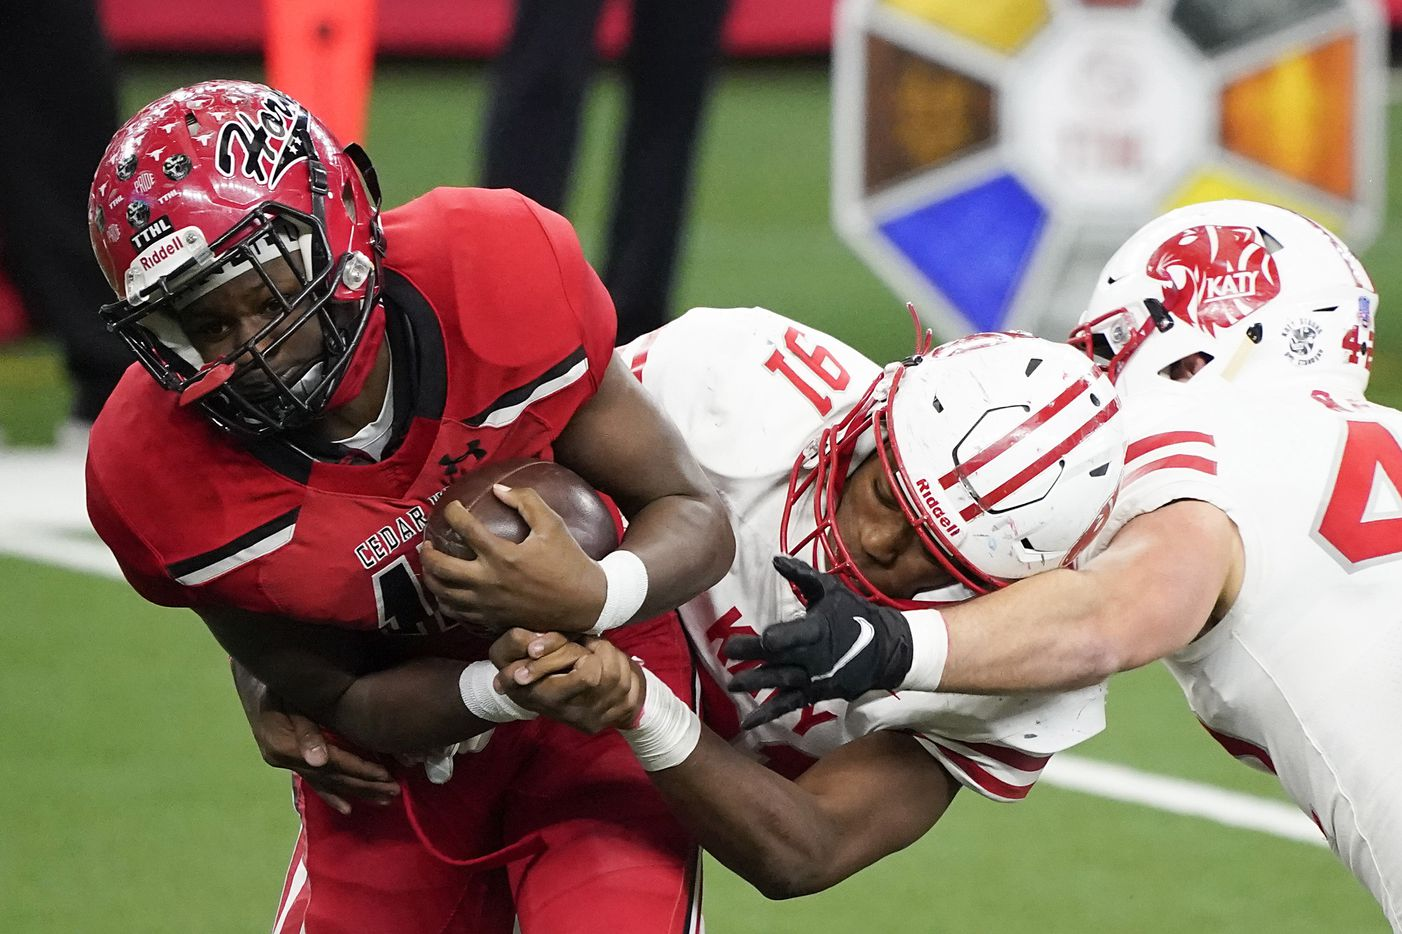 Cedar Hill wide receiver Dewayne Blanton (15) is wrapped up by Katy defensive lineman Cal Varner (91) during the second half of the Class 6A Division II state football championship game at AT&T Stadium on Saturday, Jan. 16, 2021, in Arlington, Texas. Katy won the game 51-14.